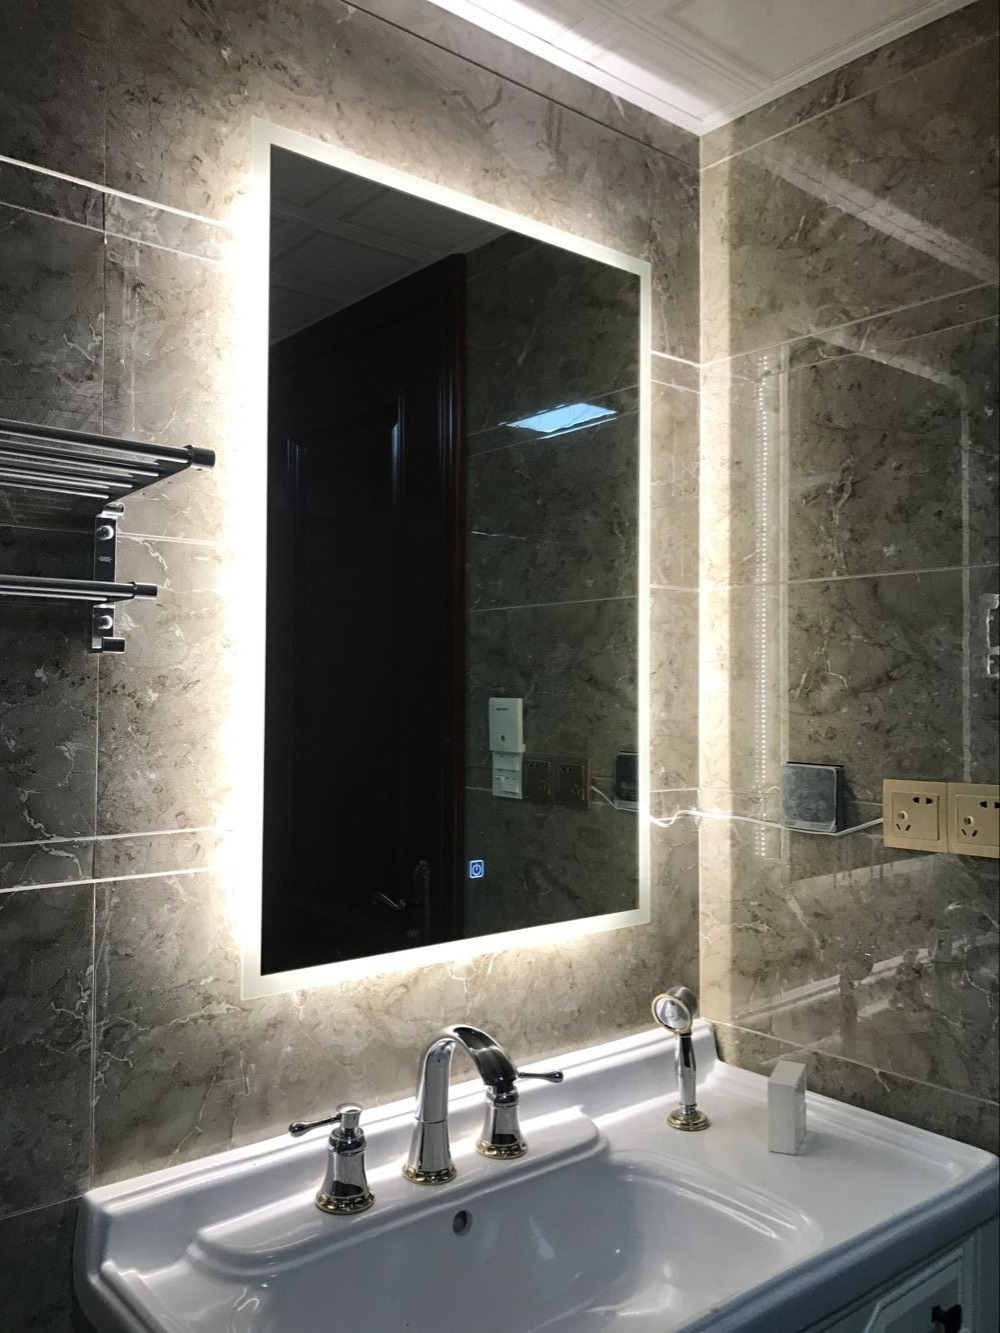 Exceptionnel Box Diffusers Led Backlit Bathroom Mirror Vanity Square Wall Mount Bathroom  Finger Touch Light Mirror Bath Mirrors In Bath Mirrors From Home  Improvement On ...